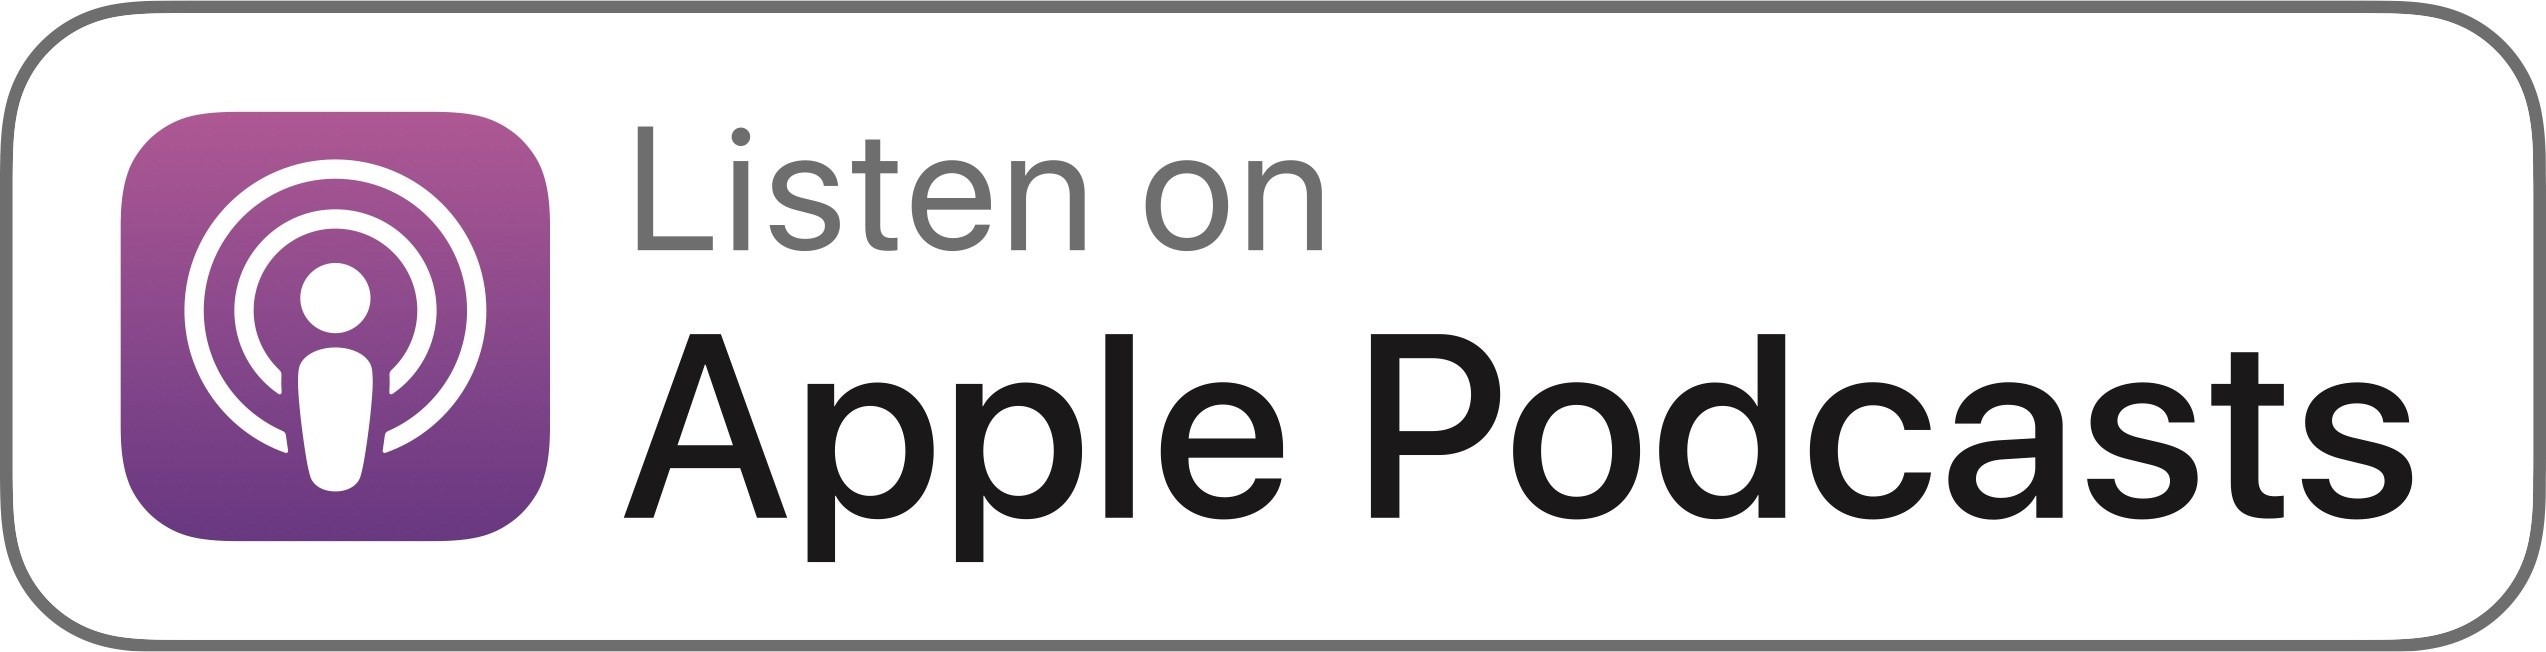 Apple Podcasts Remarkable Results Podcast